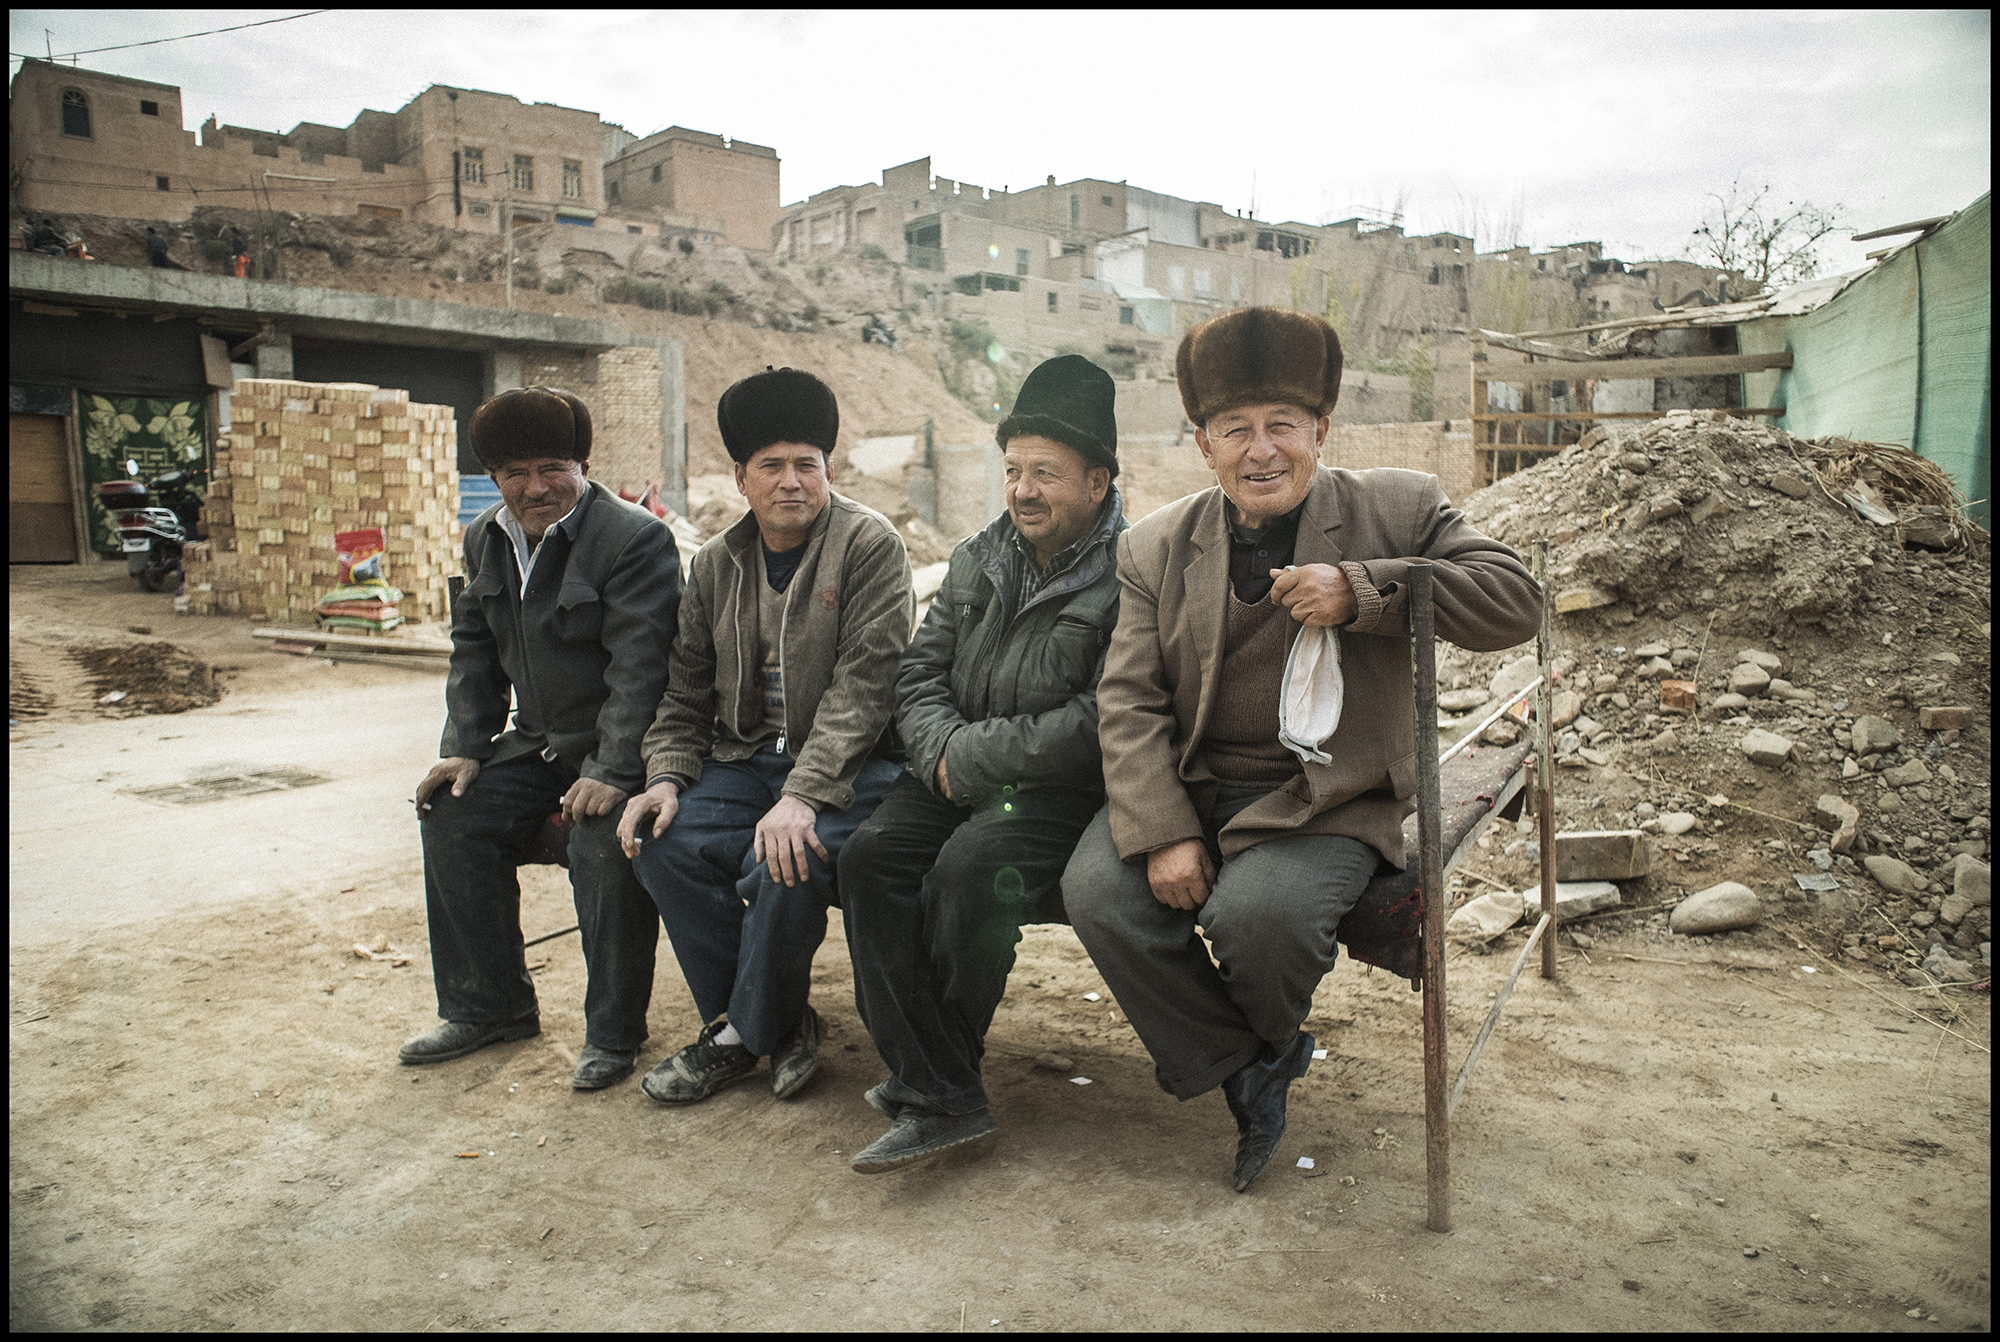 Digital Patrik Wallner Kashgar Four Men LOWQ 2000P